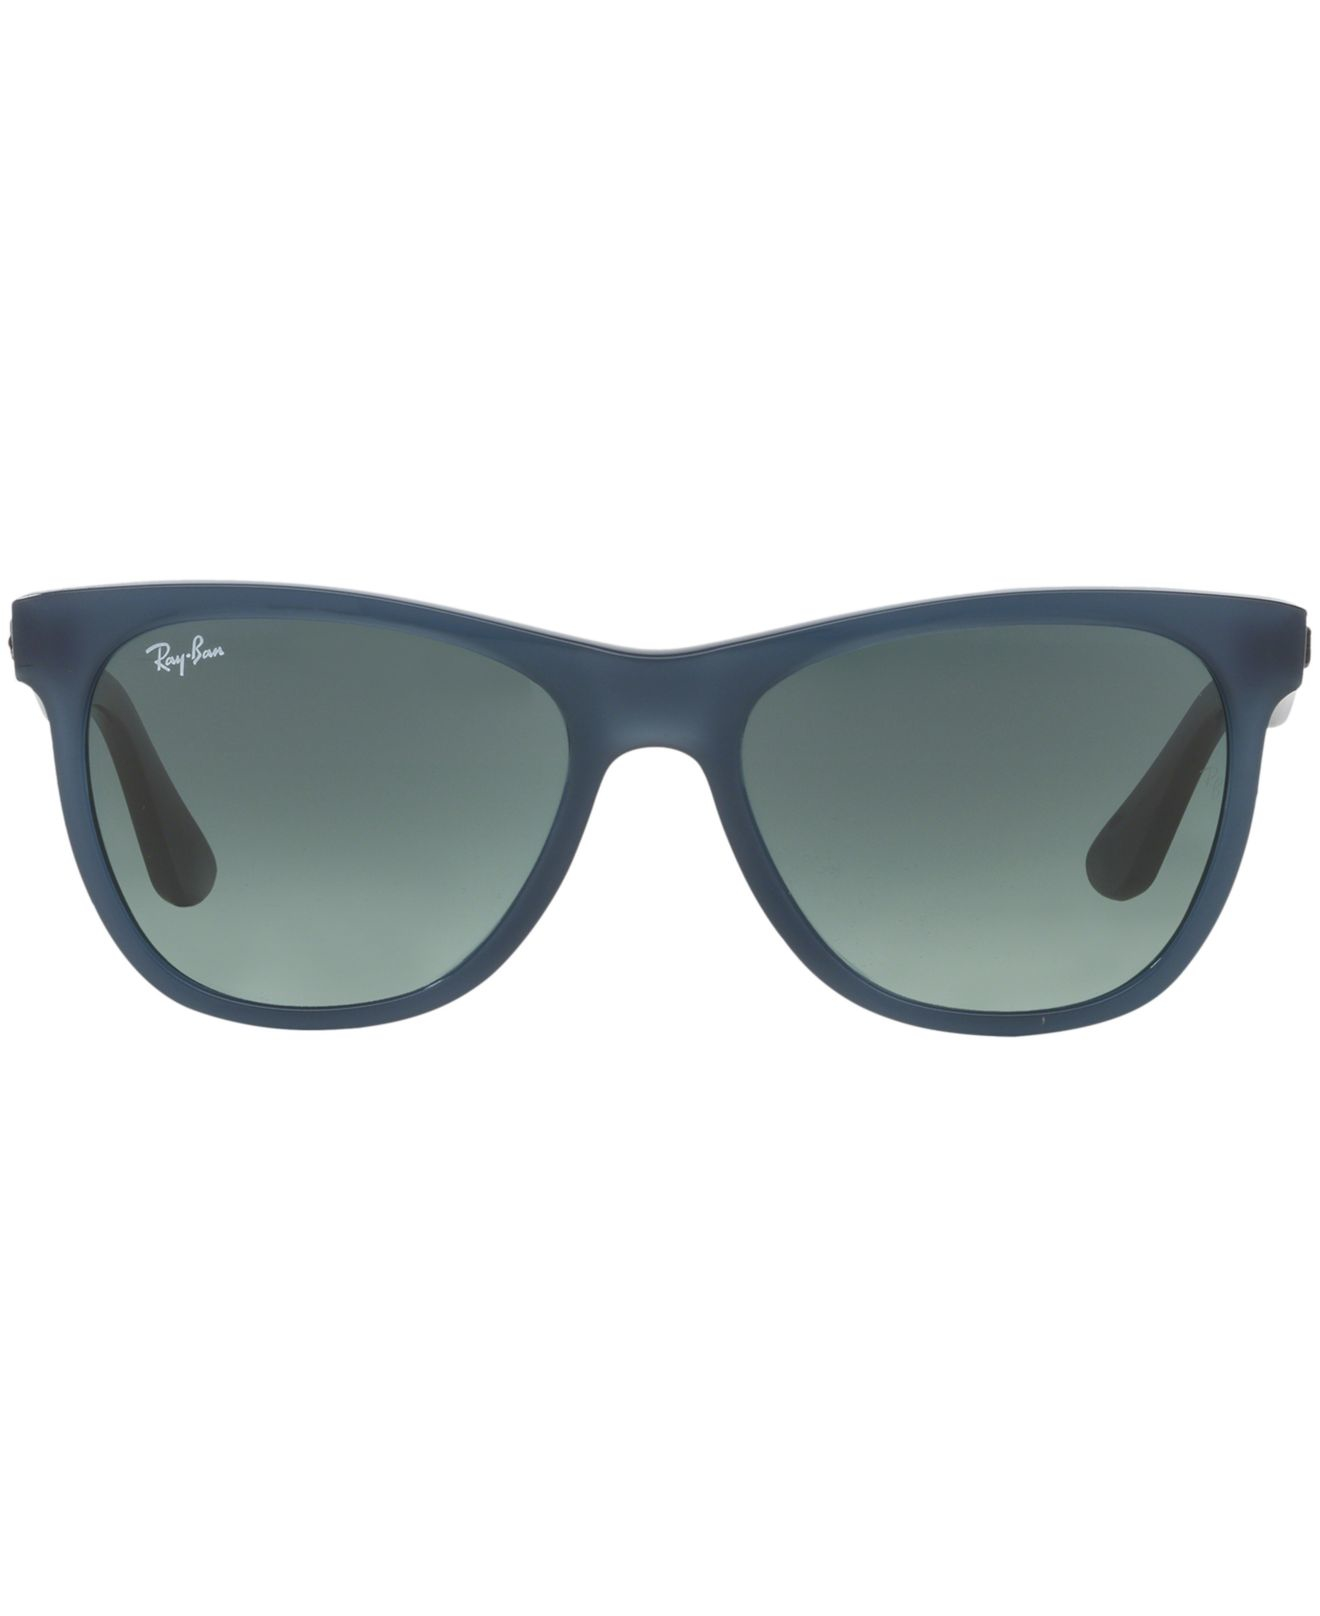 rb4184  Ray-ban Rb4184 54 in Blue for Men